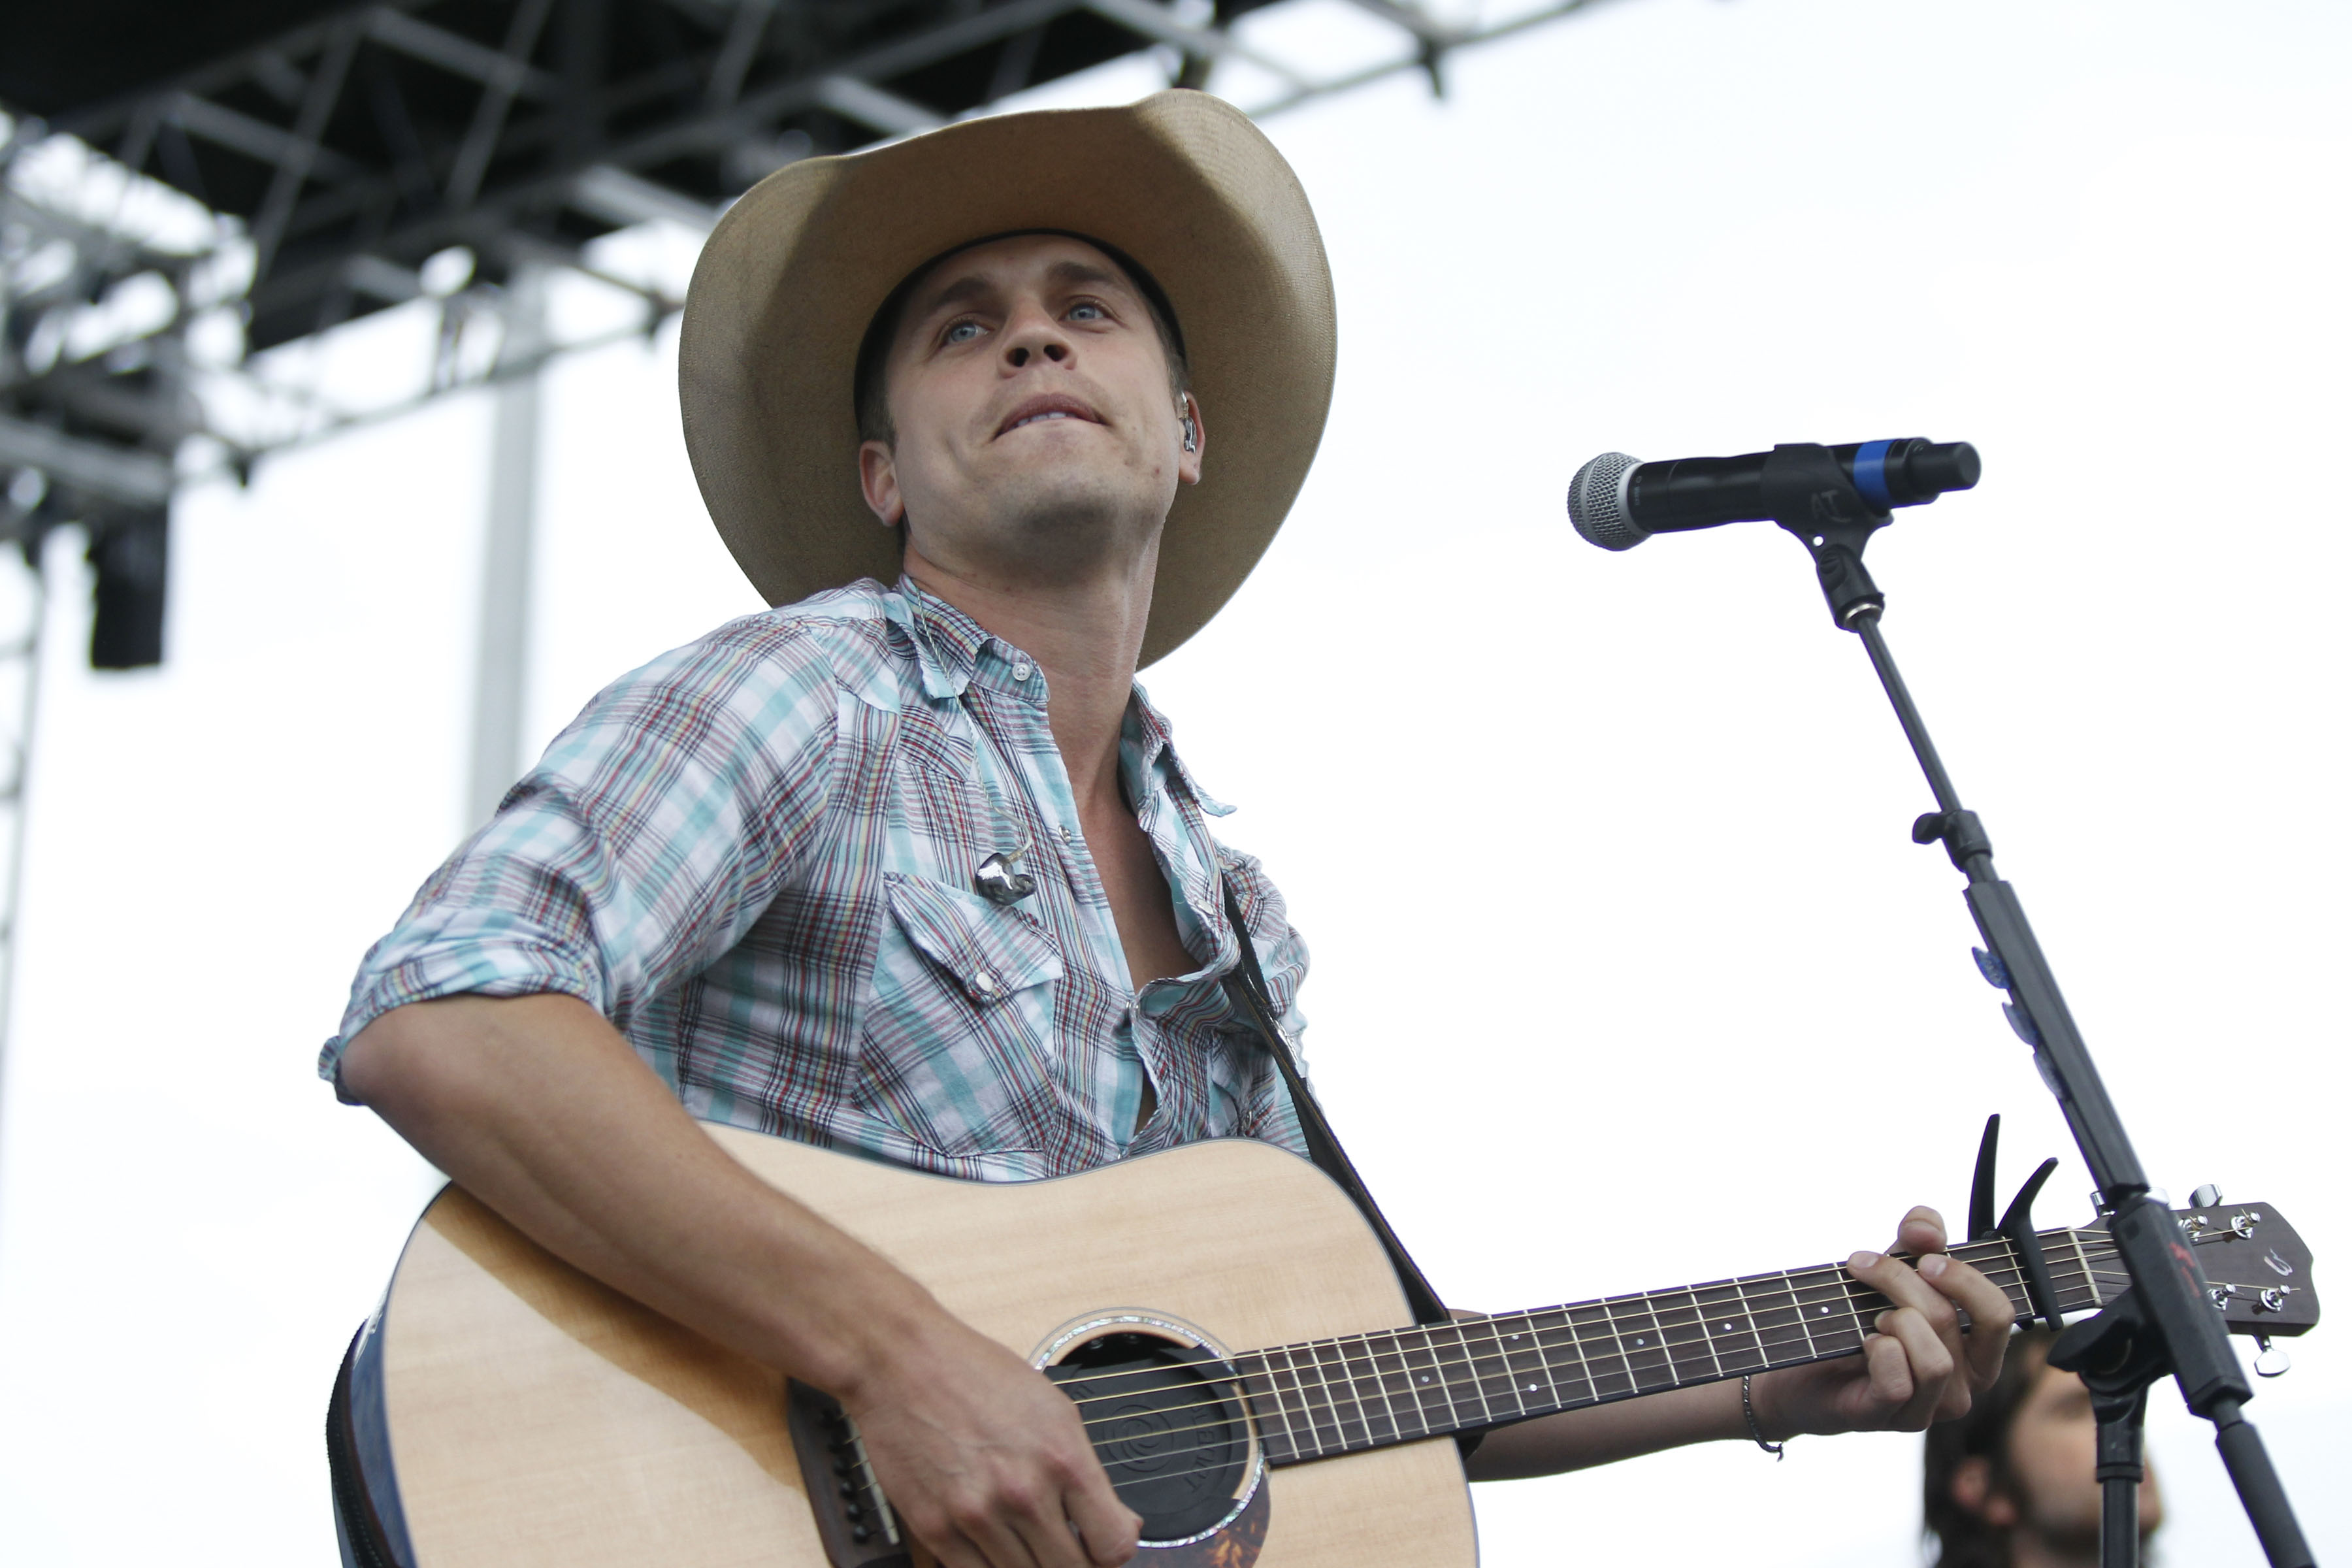 Dustin Lynch, who has performed at the WYRK Taste of Country concert, returns for the WYRK Transitowne Acoustic Concert. (Photo by Harry Scull Jr. / Buffalo News file photo)